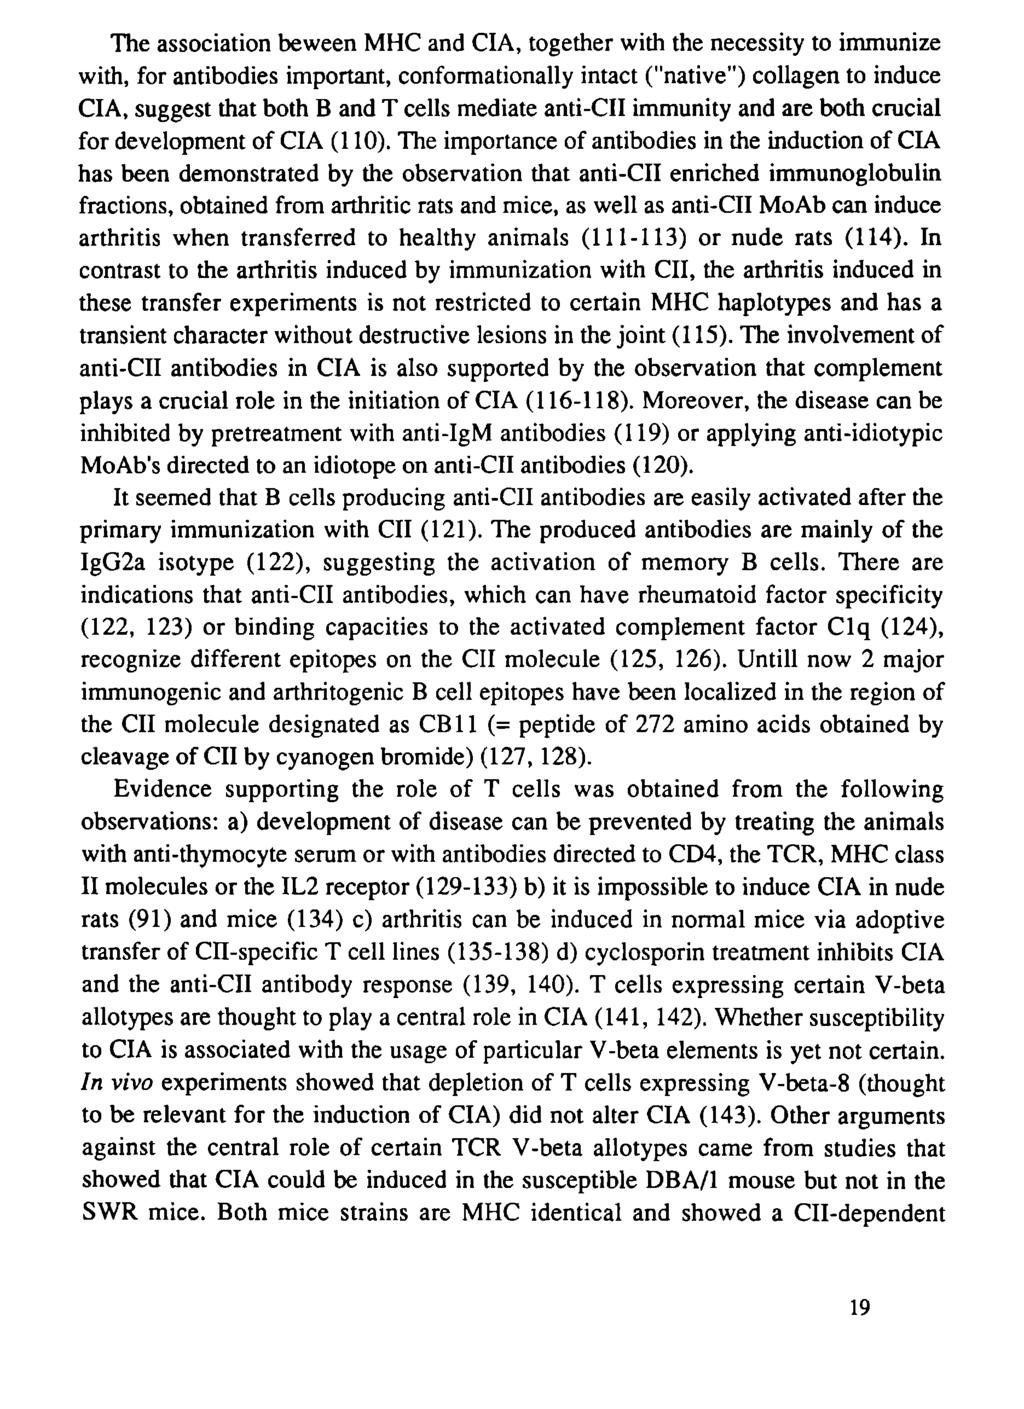 "The association beween МНС and CIA, together with the necessity to immunize with, for antibodies important, conformationally intact (""native"") collagen to induce CIA, suggest that both В and Τ cells"